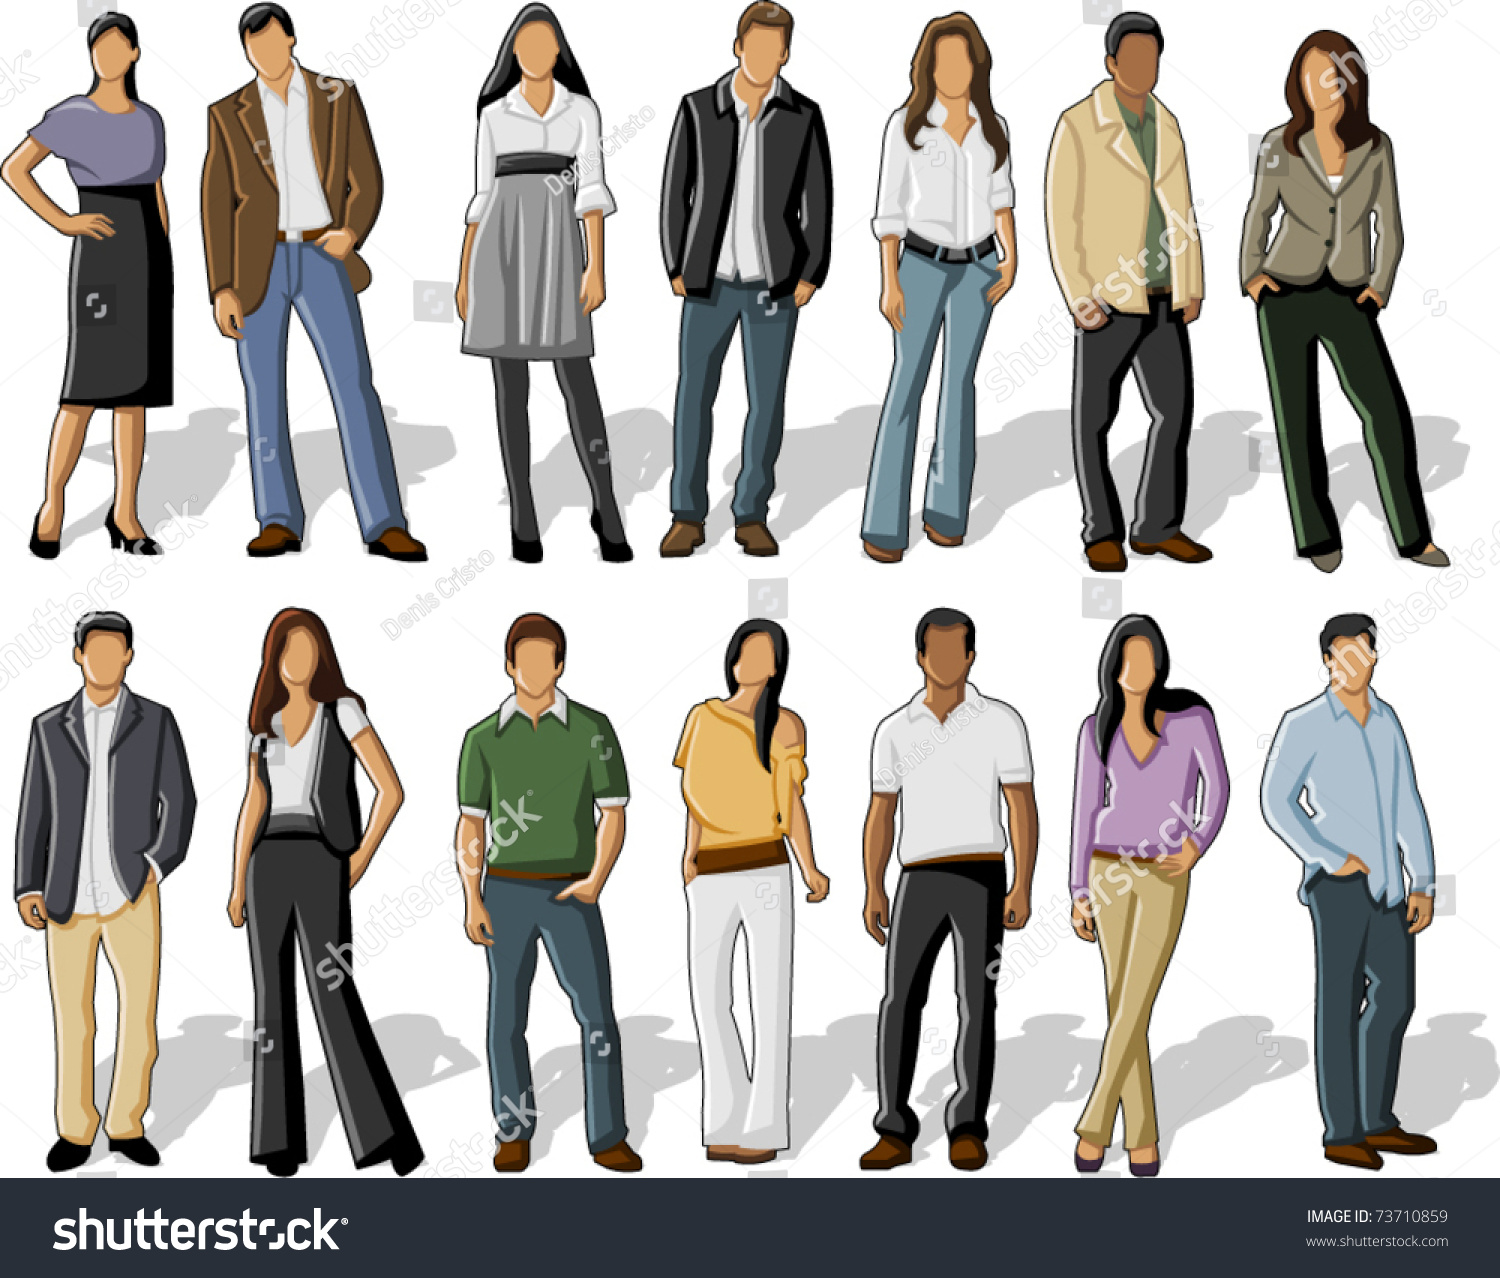 Group Business Office People Stock Vector 73710859 - Shutterstock